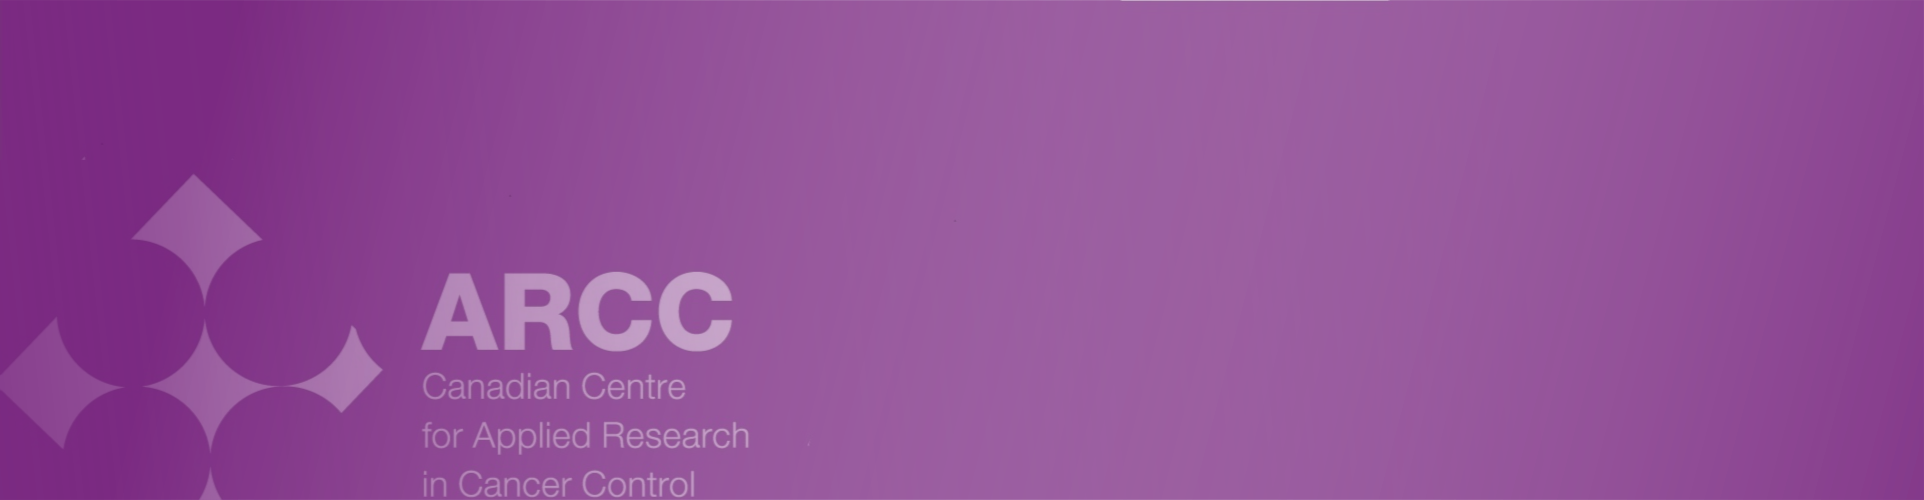 ARCC Logo 2013 purple page header Website Slider2